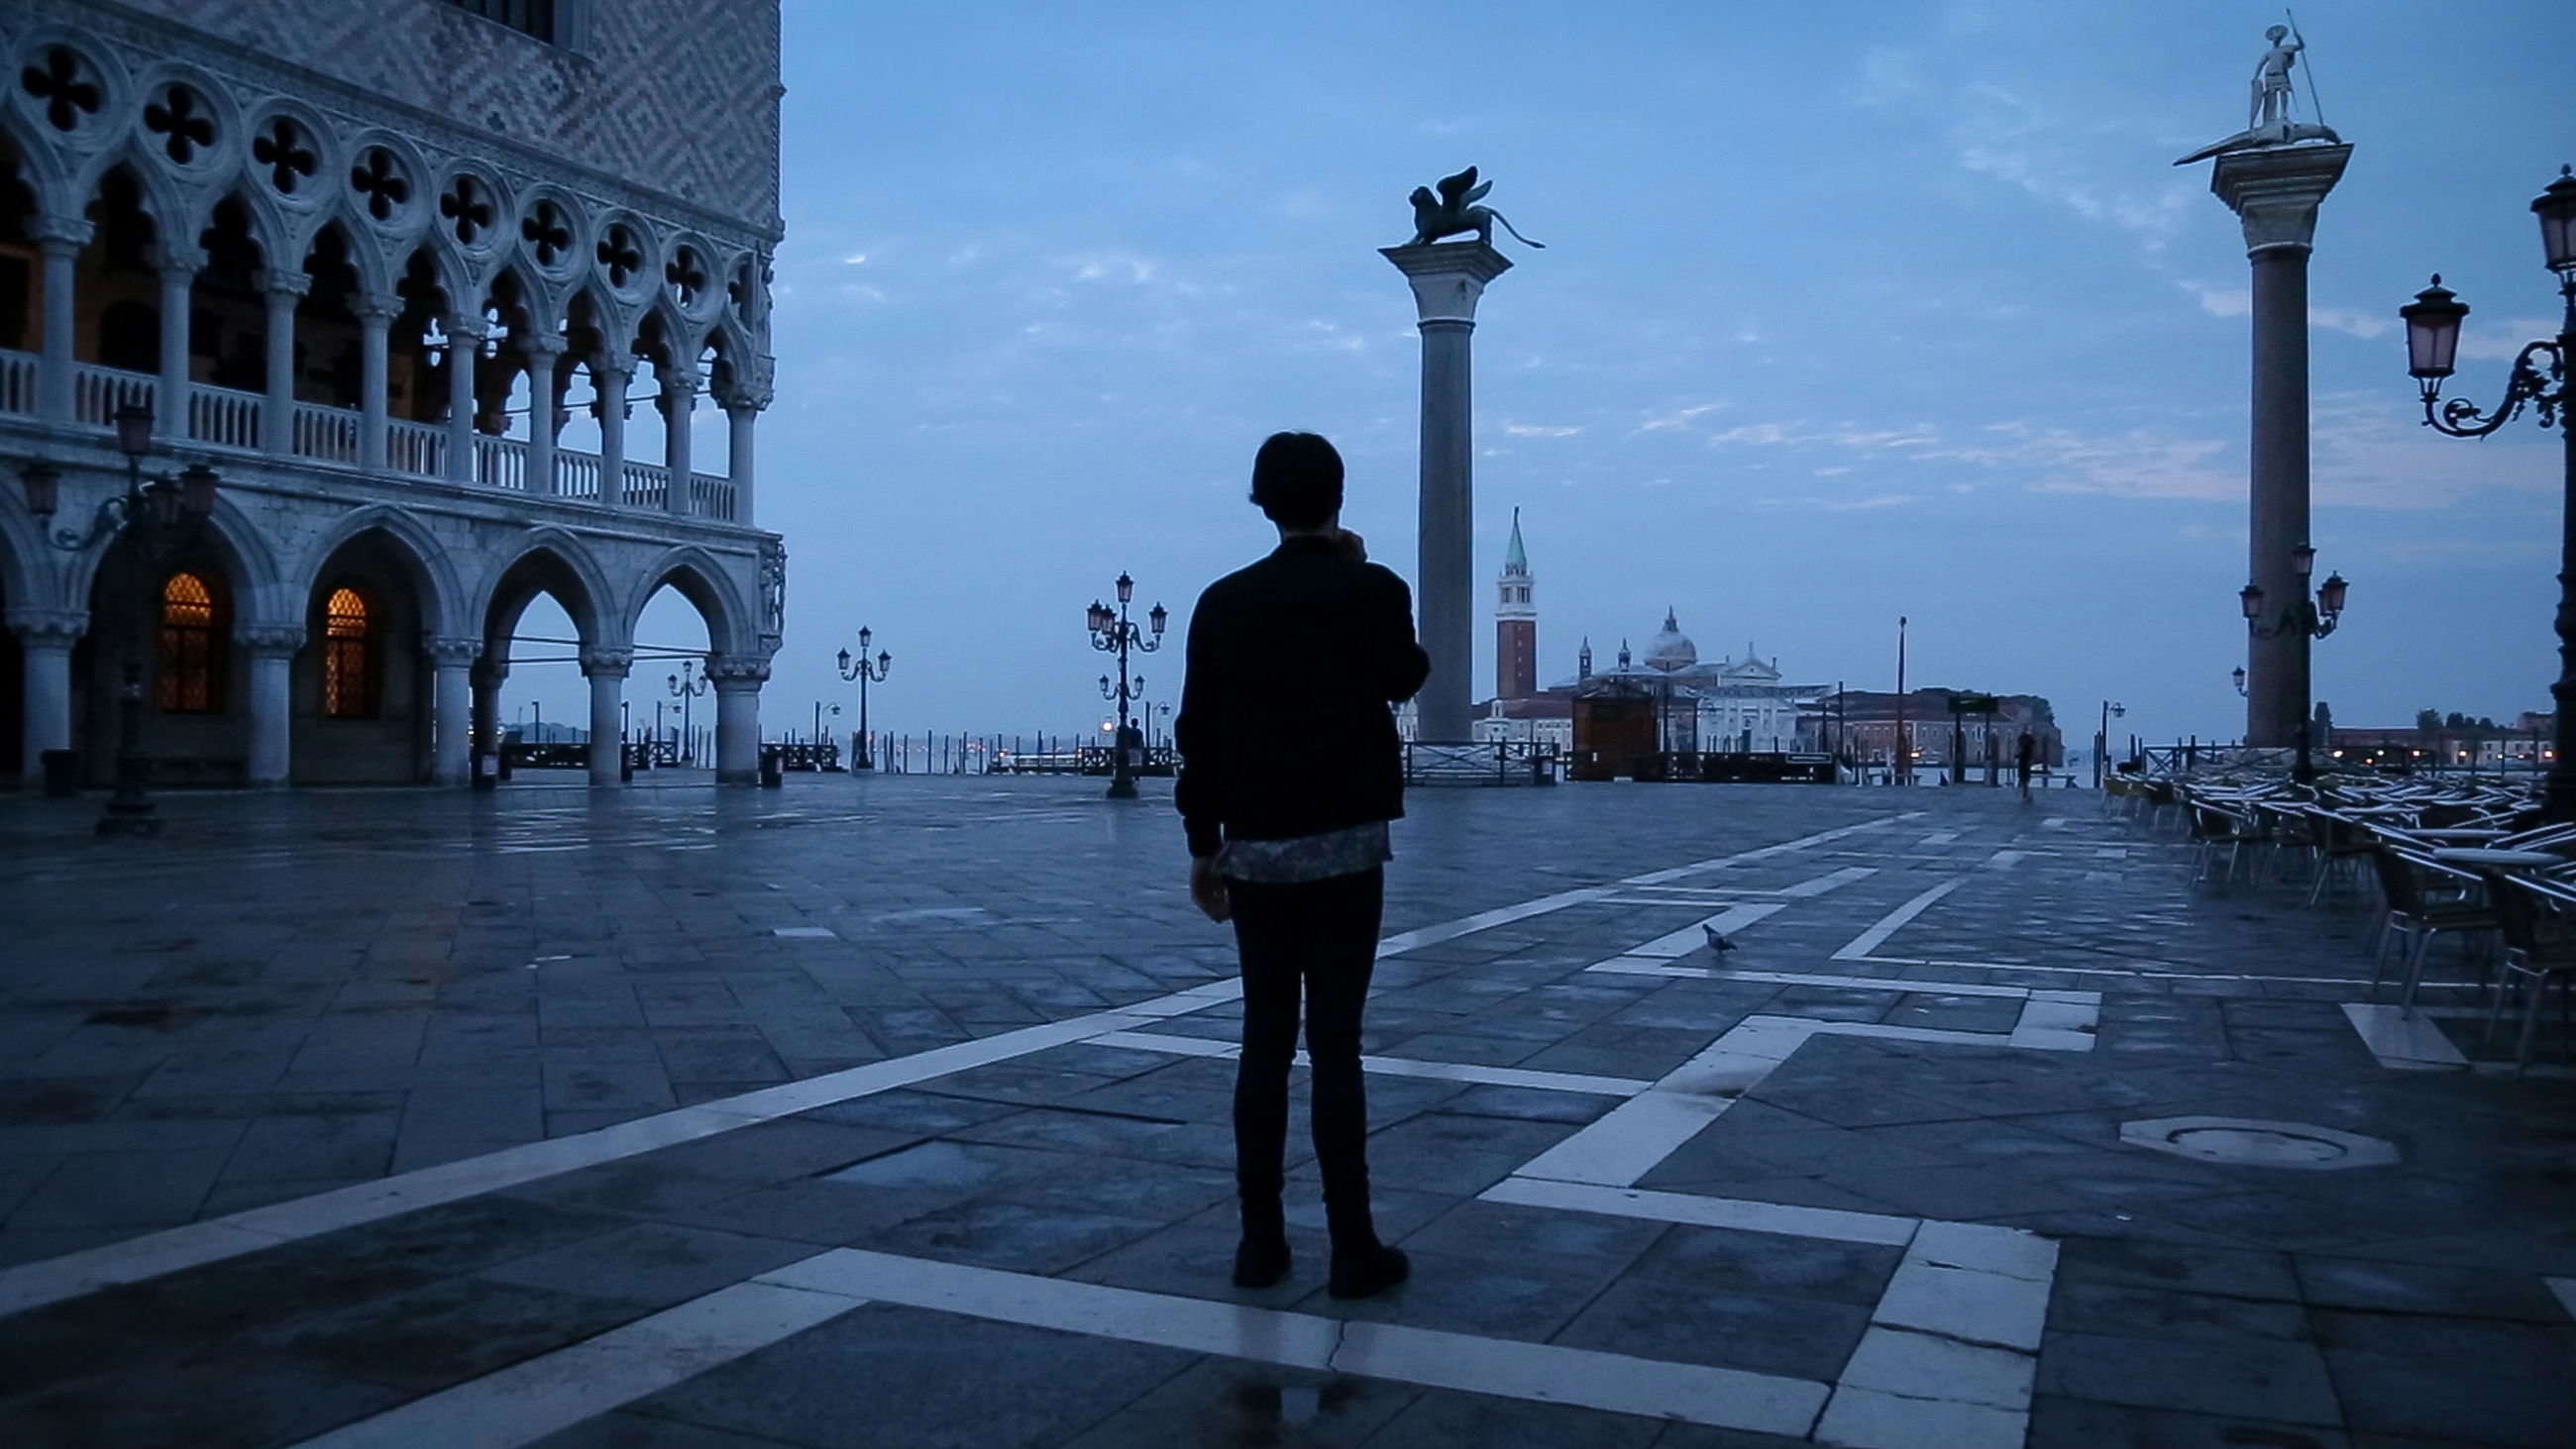 sky, one person, rear view, city, travel destinations, outdoors, men, architecture, people, adults only, adult, one man only, day